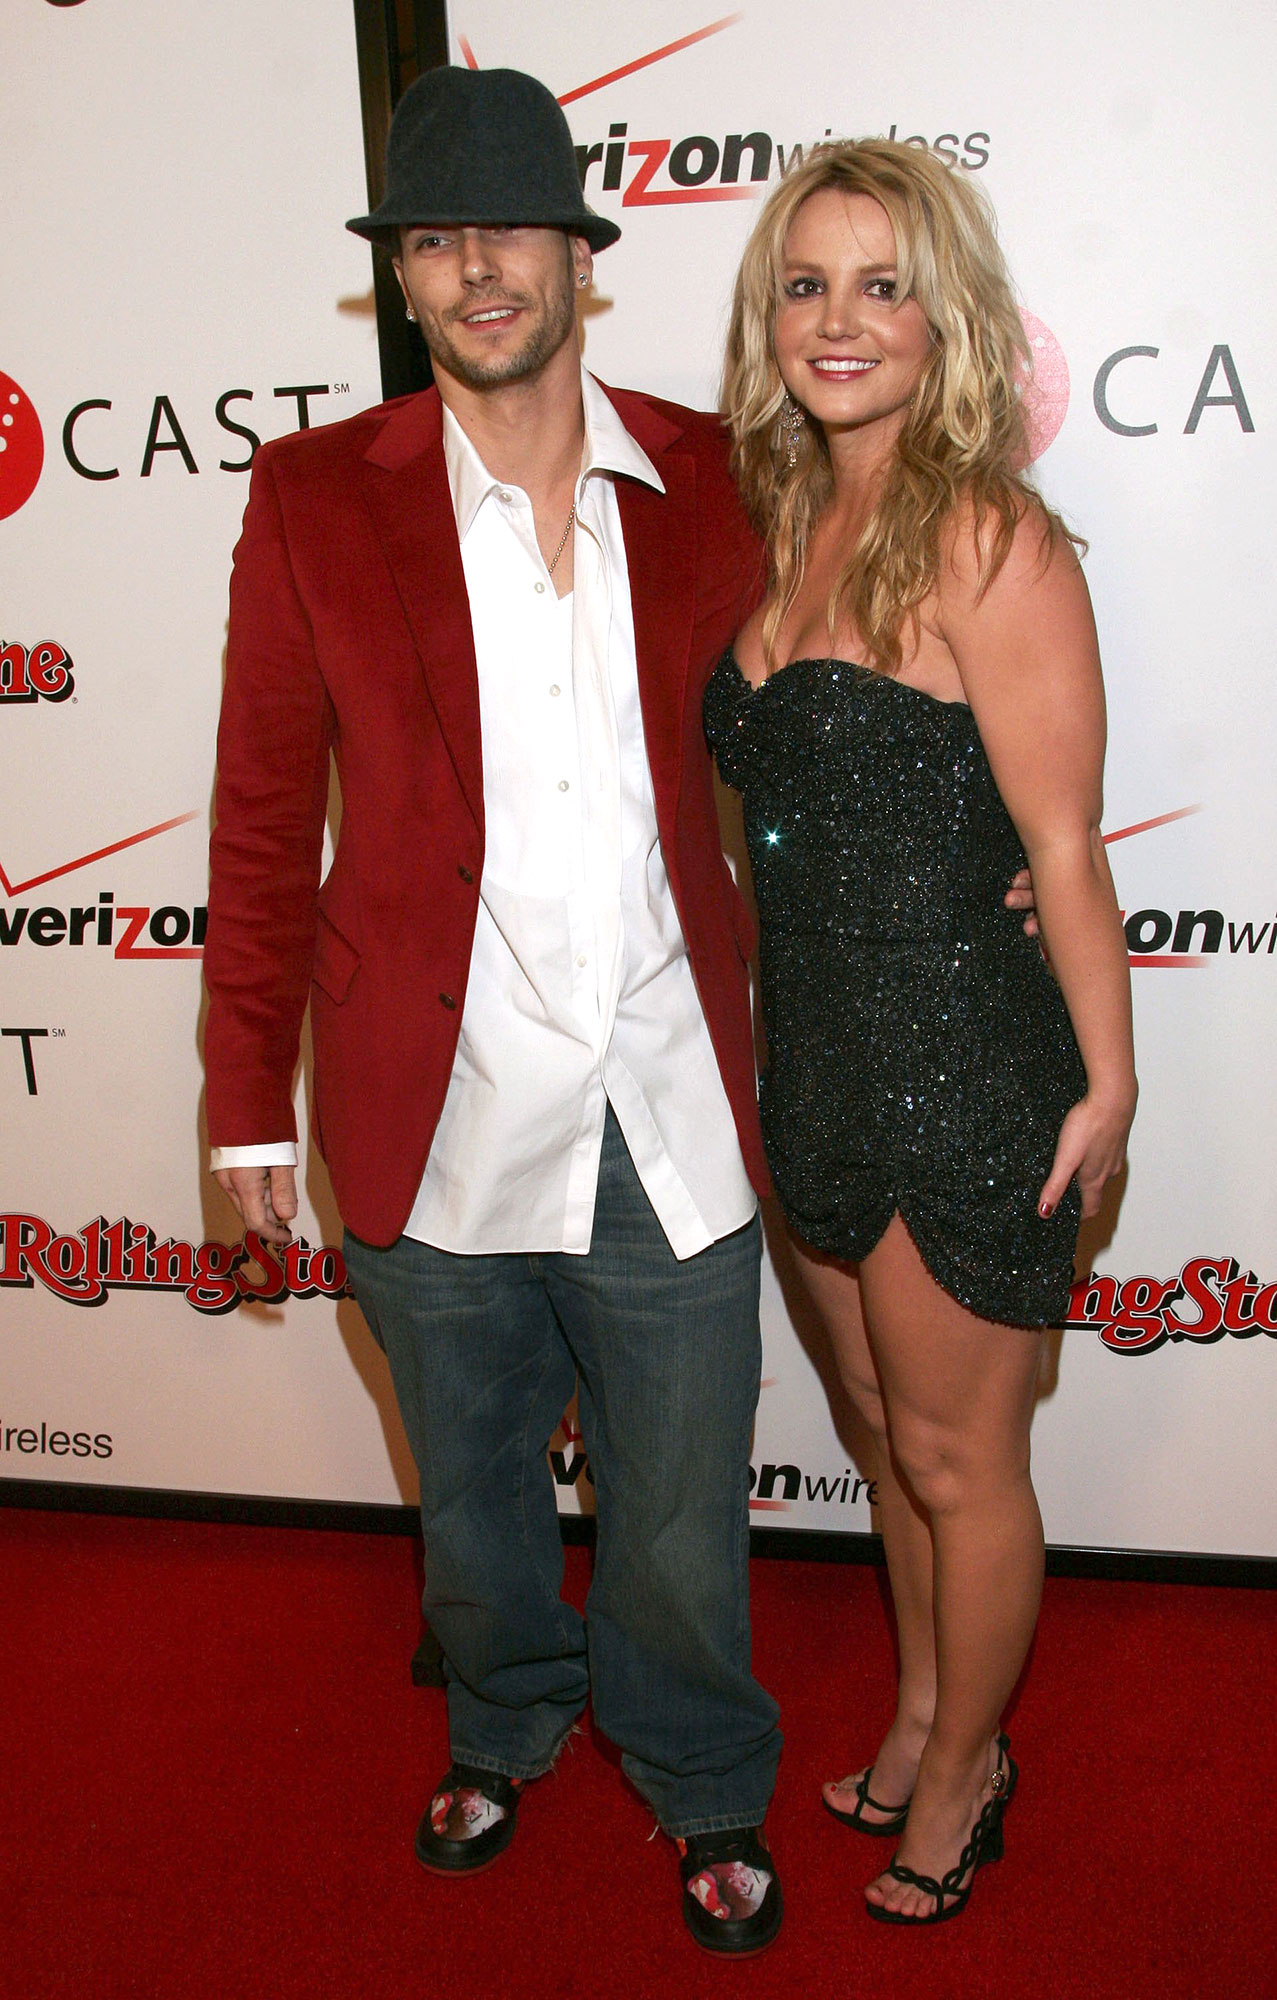 Celebrity Couples Who Got Engaged and Married in the Same Year - Engaged: June 2004 Married: October 6, 2004 Status: Divorced in July 2007 and share sons Preston and Jayden; Spears is dating Sam Asghari and Federline is married to Victoria Prince